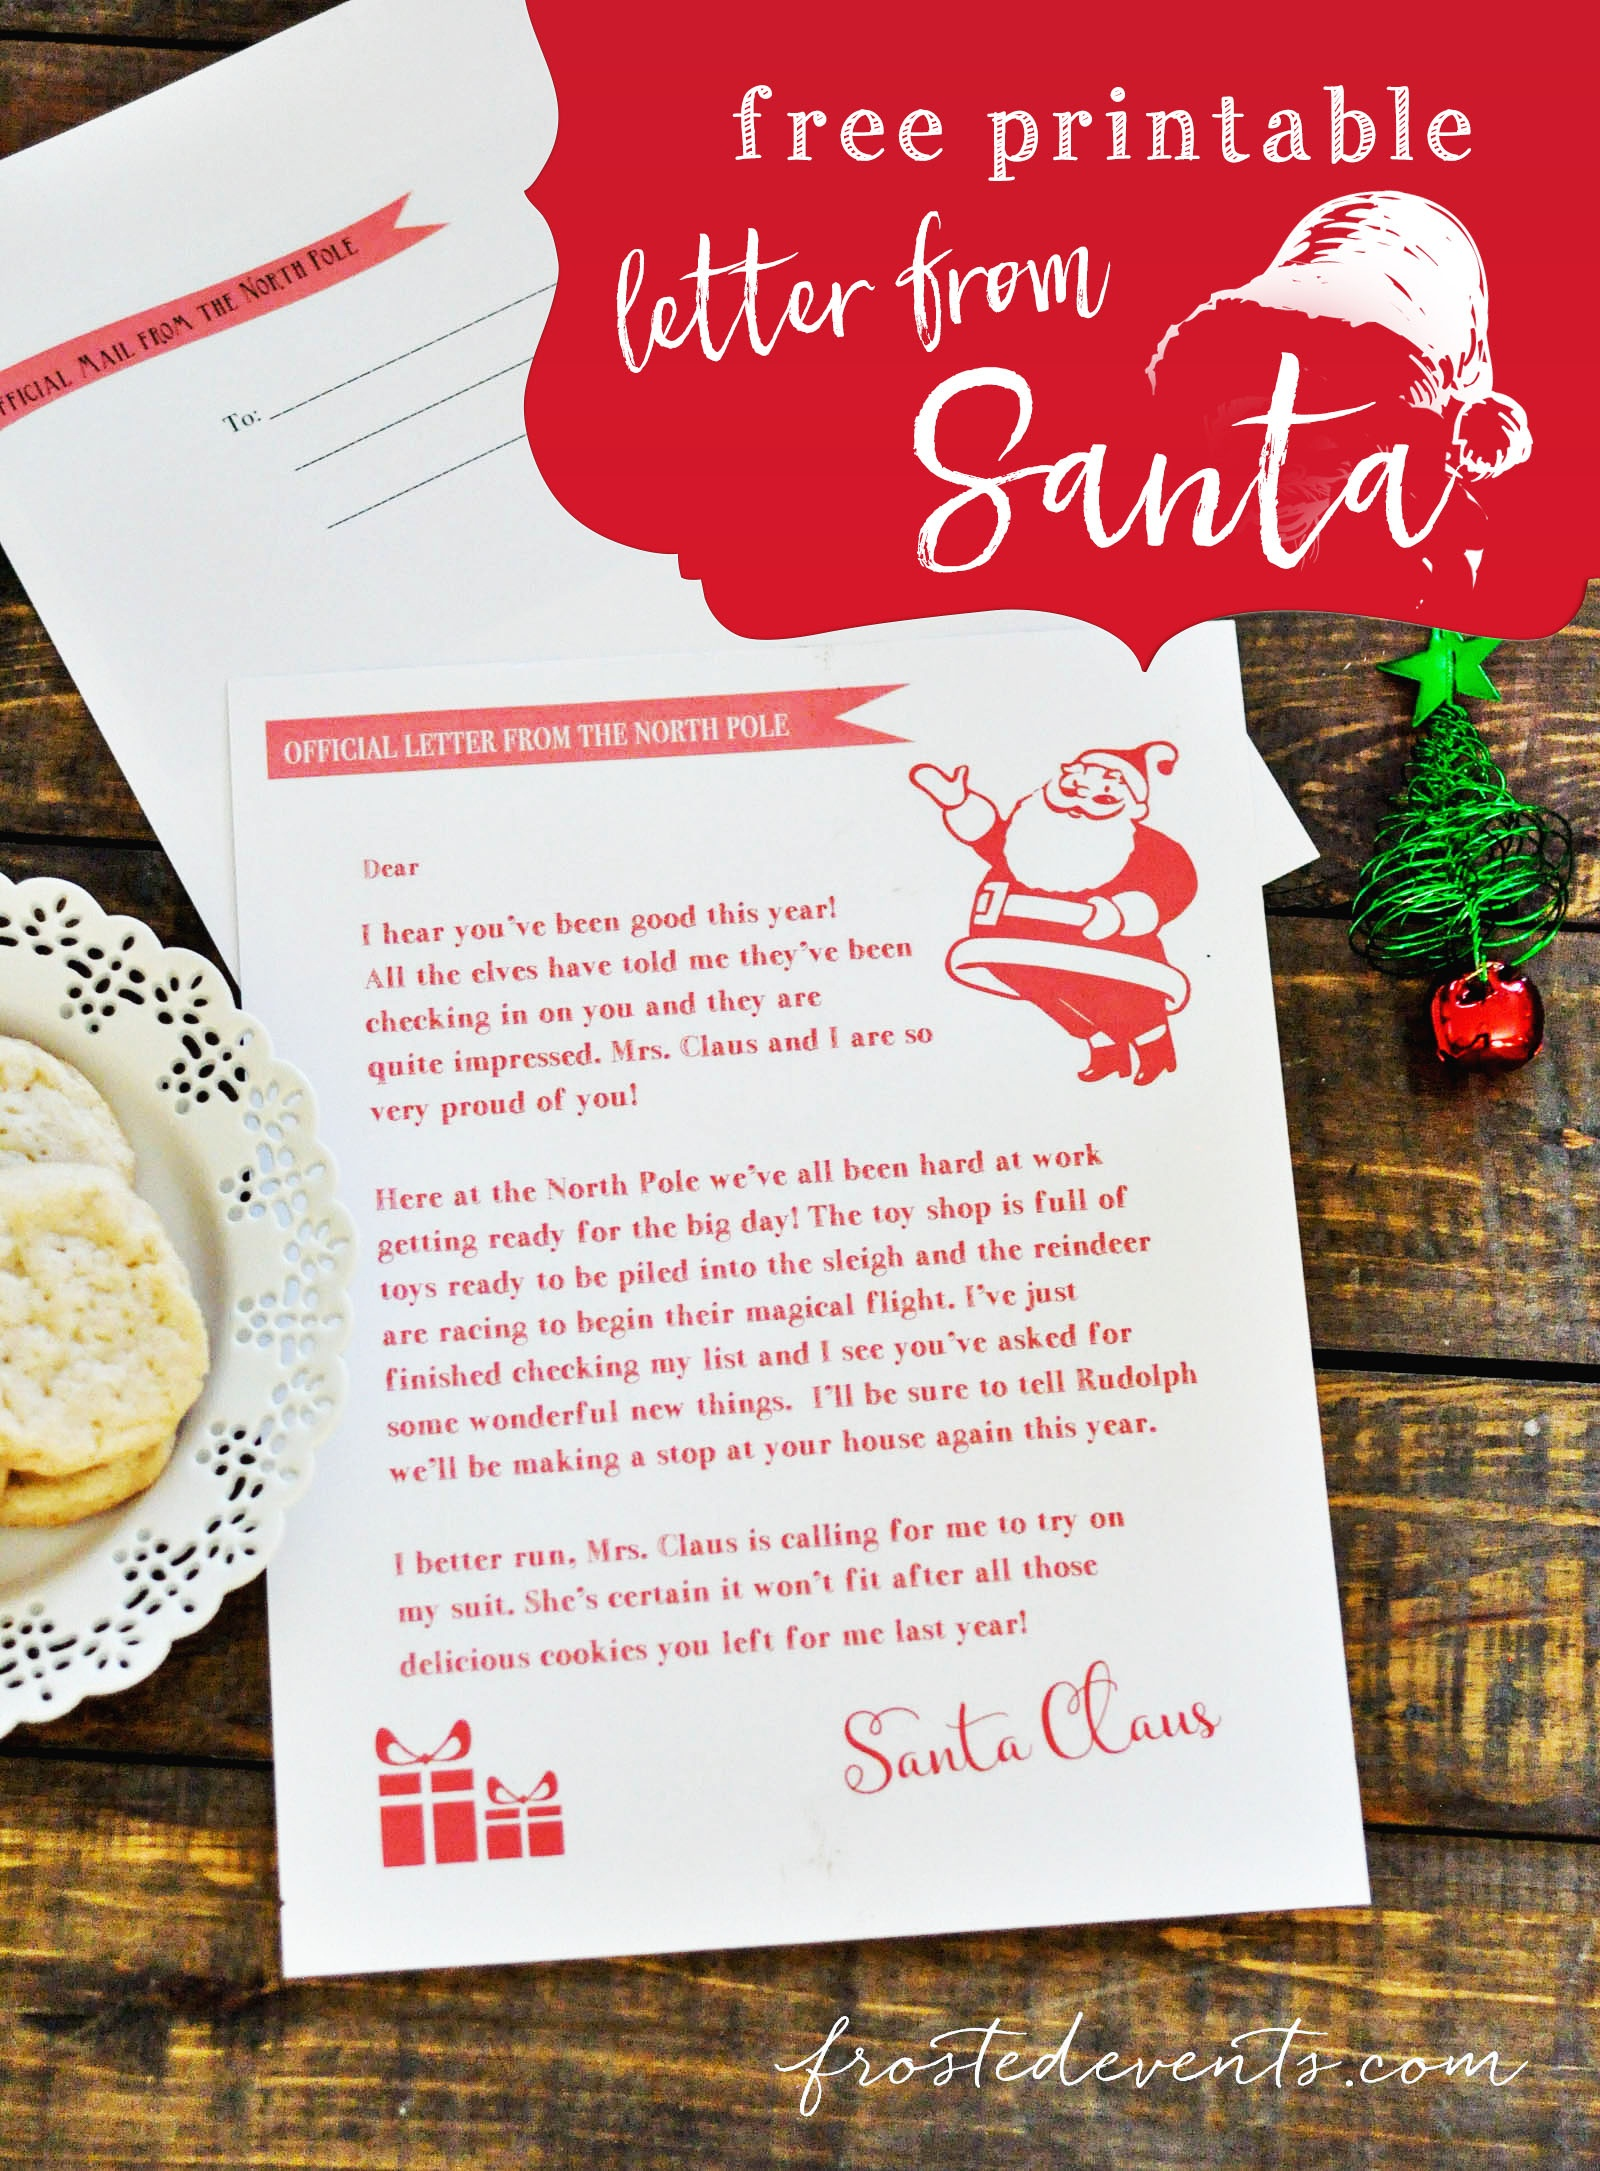 Letter From Santa - Free Printable - Free Printable Letters From Santa Claus